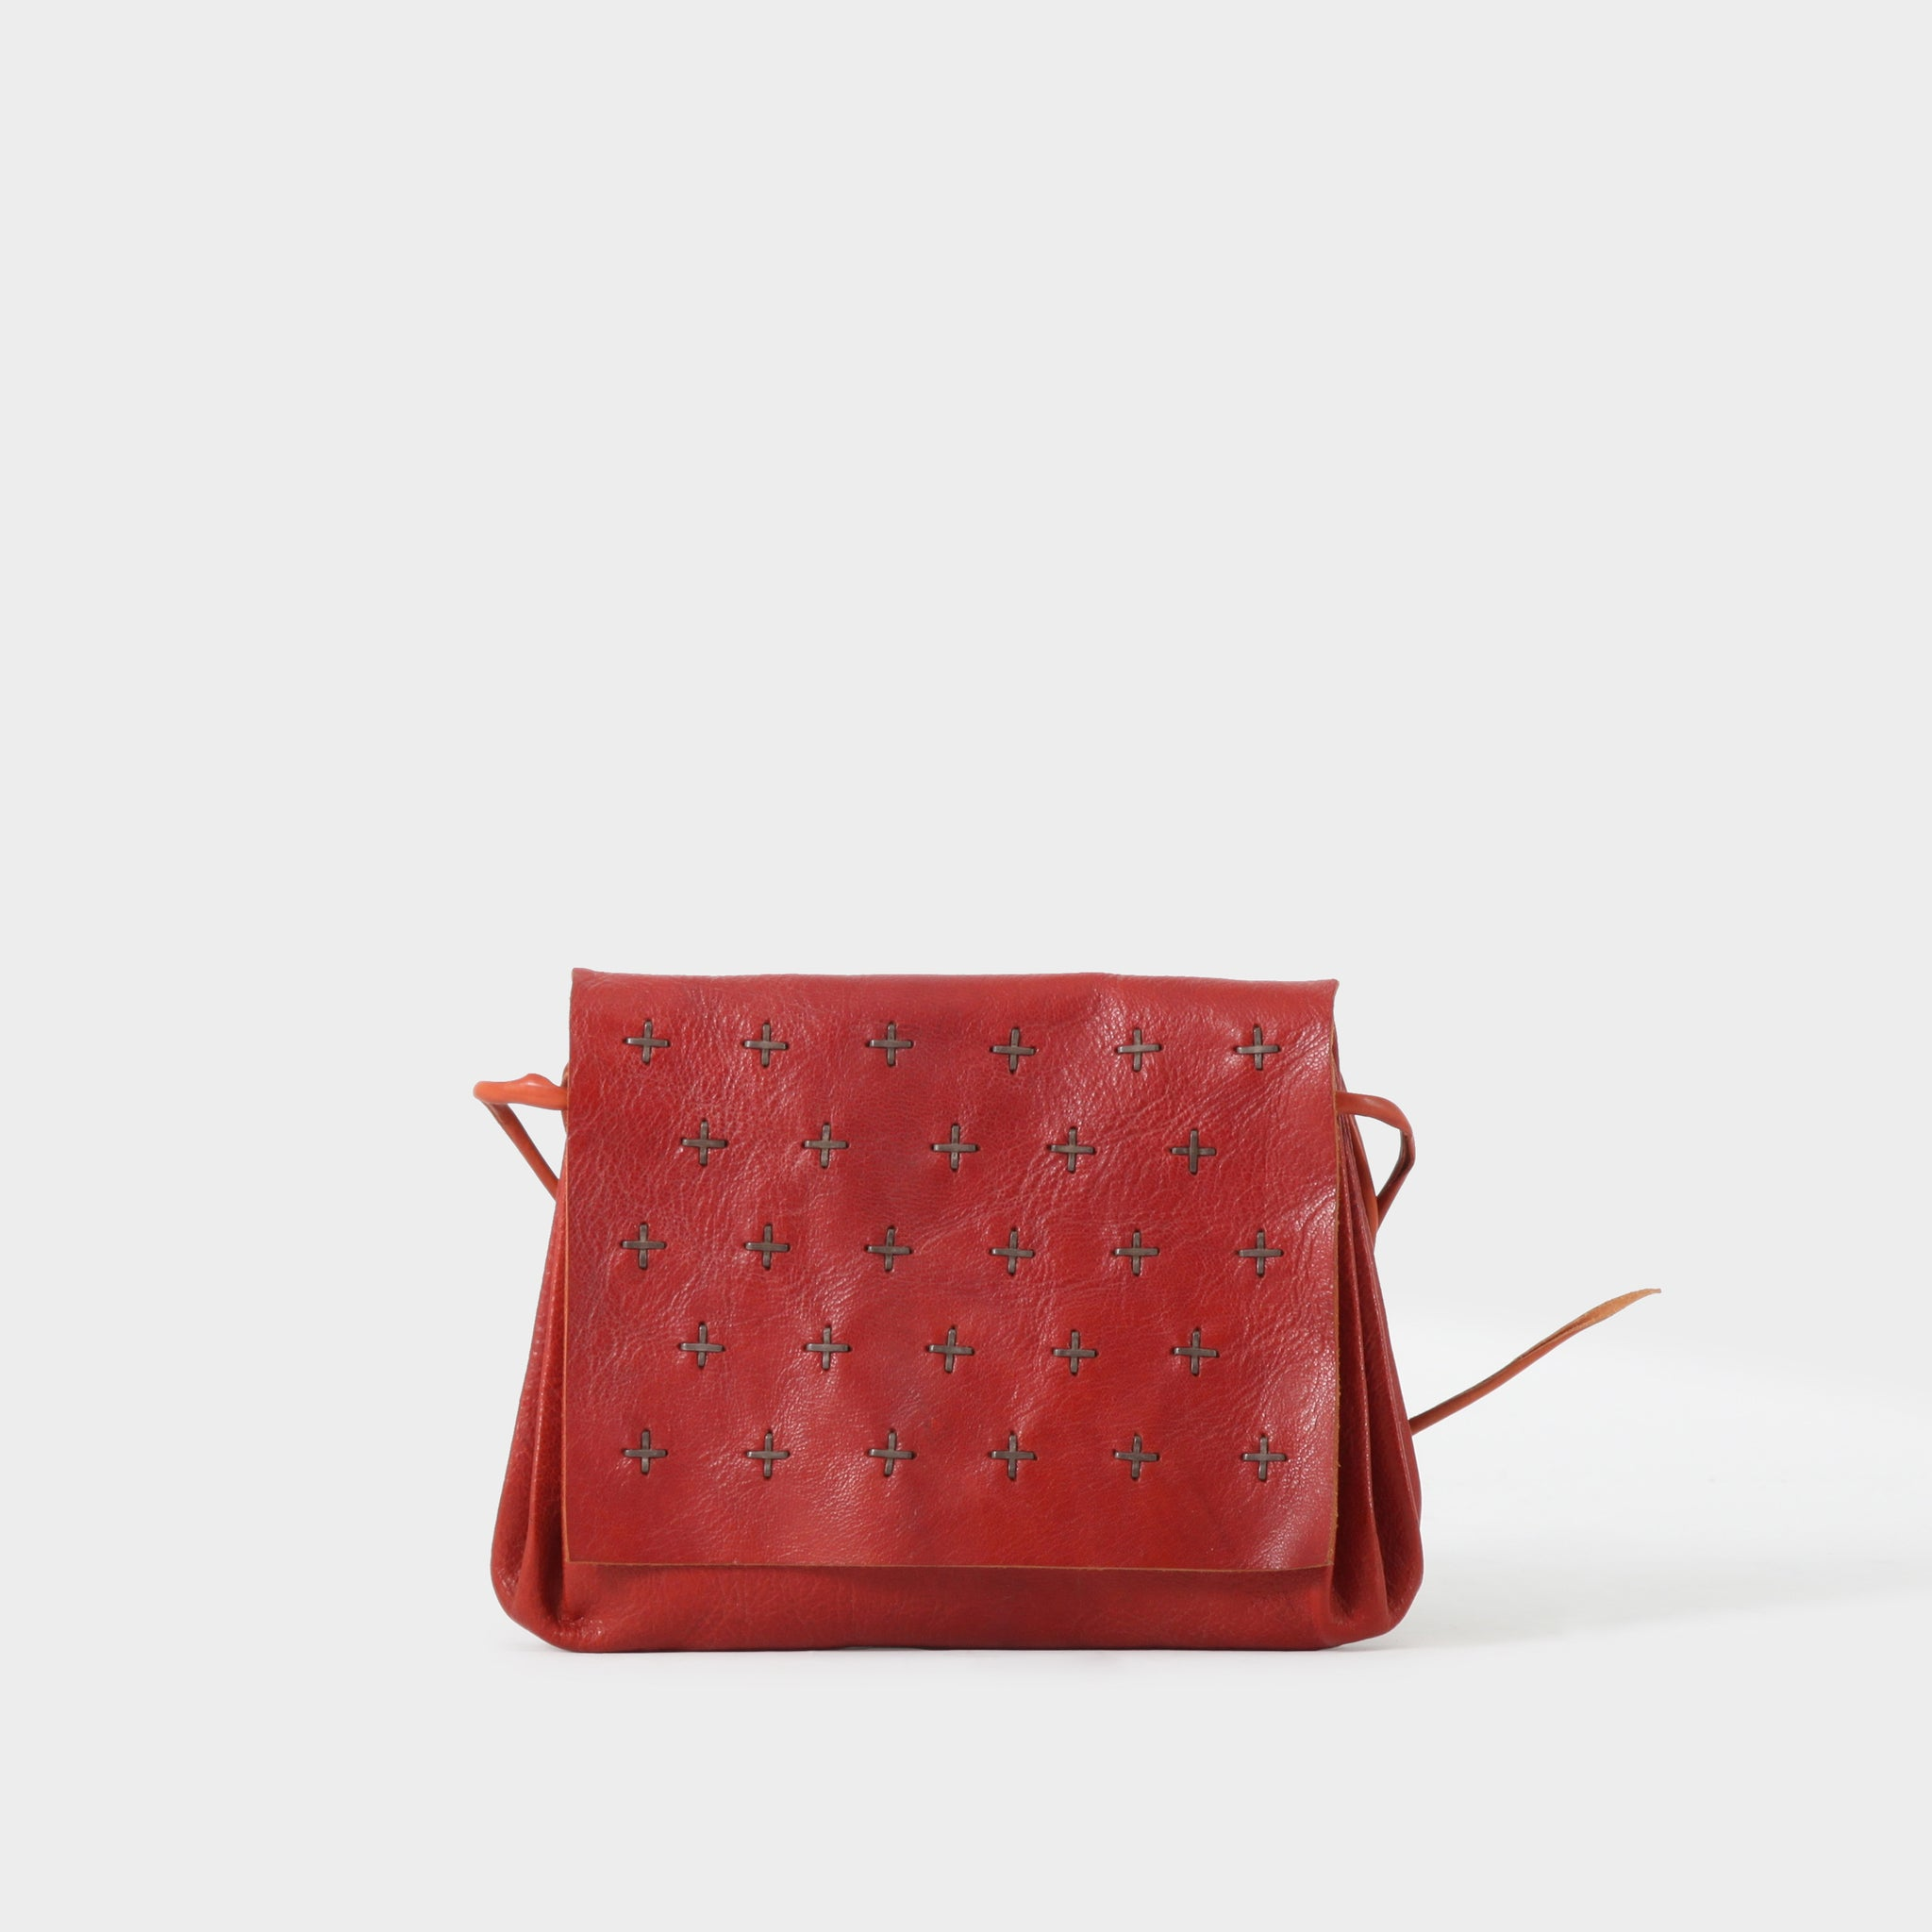 MA+ Studded Accordion Handbag